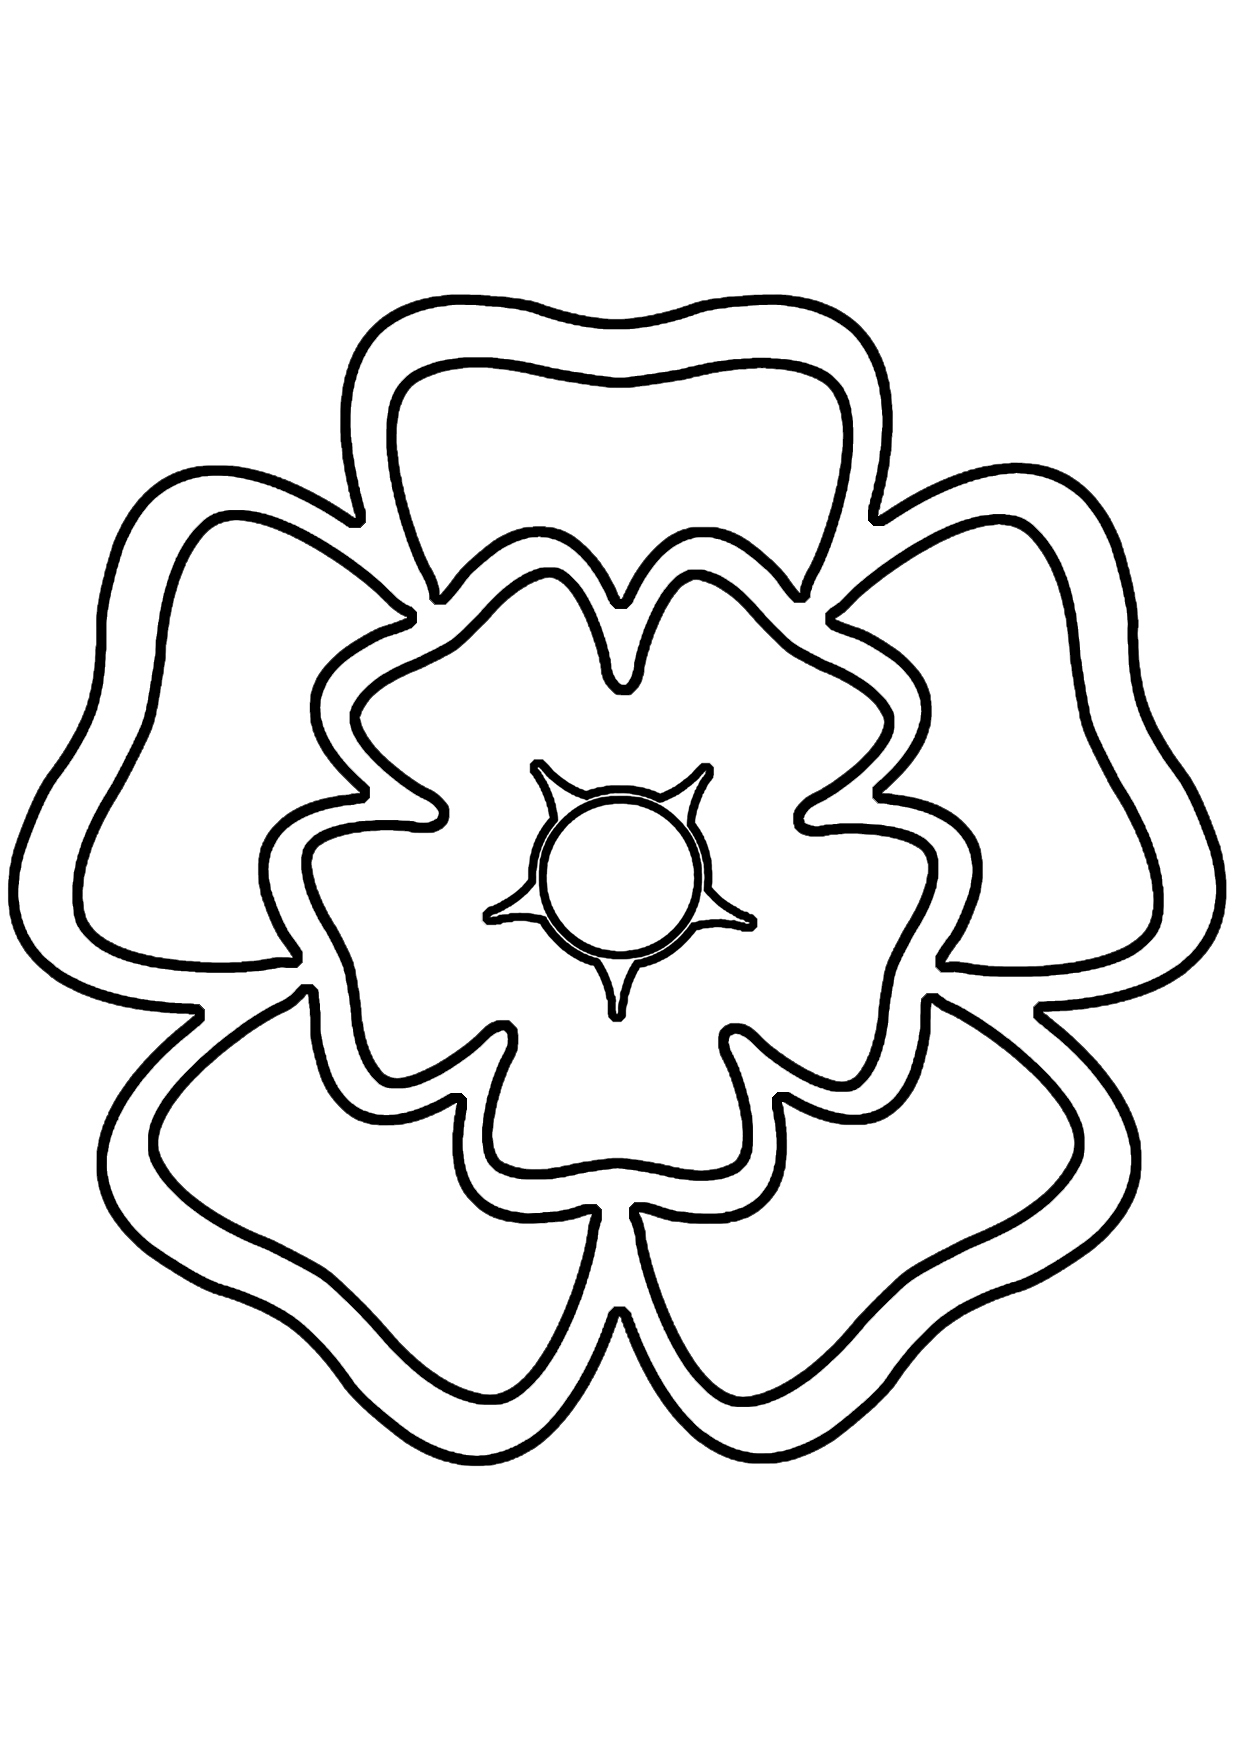 Line Art Flower Stencil Designs : Line drawing rose cliparts